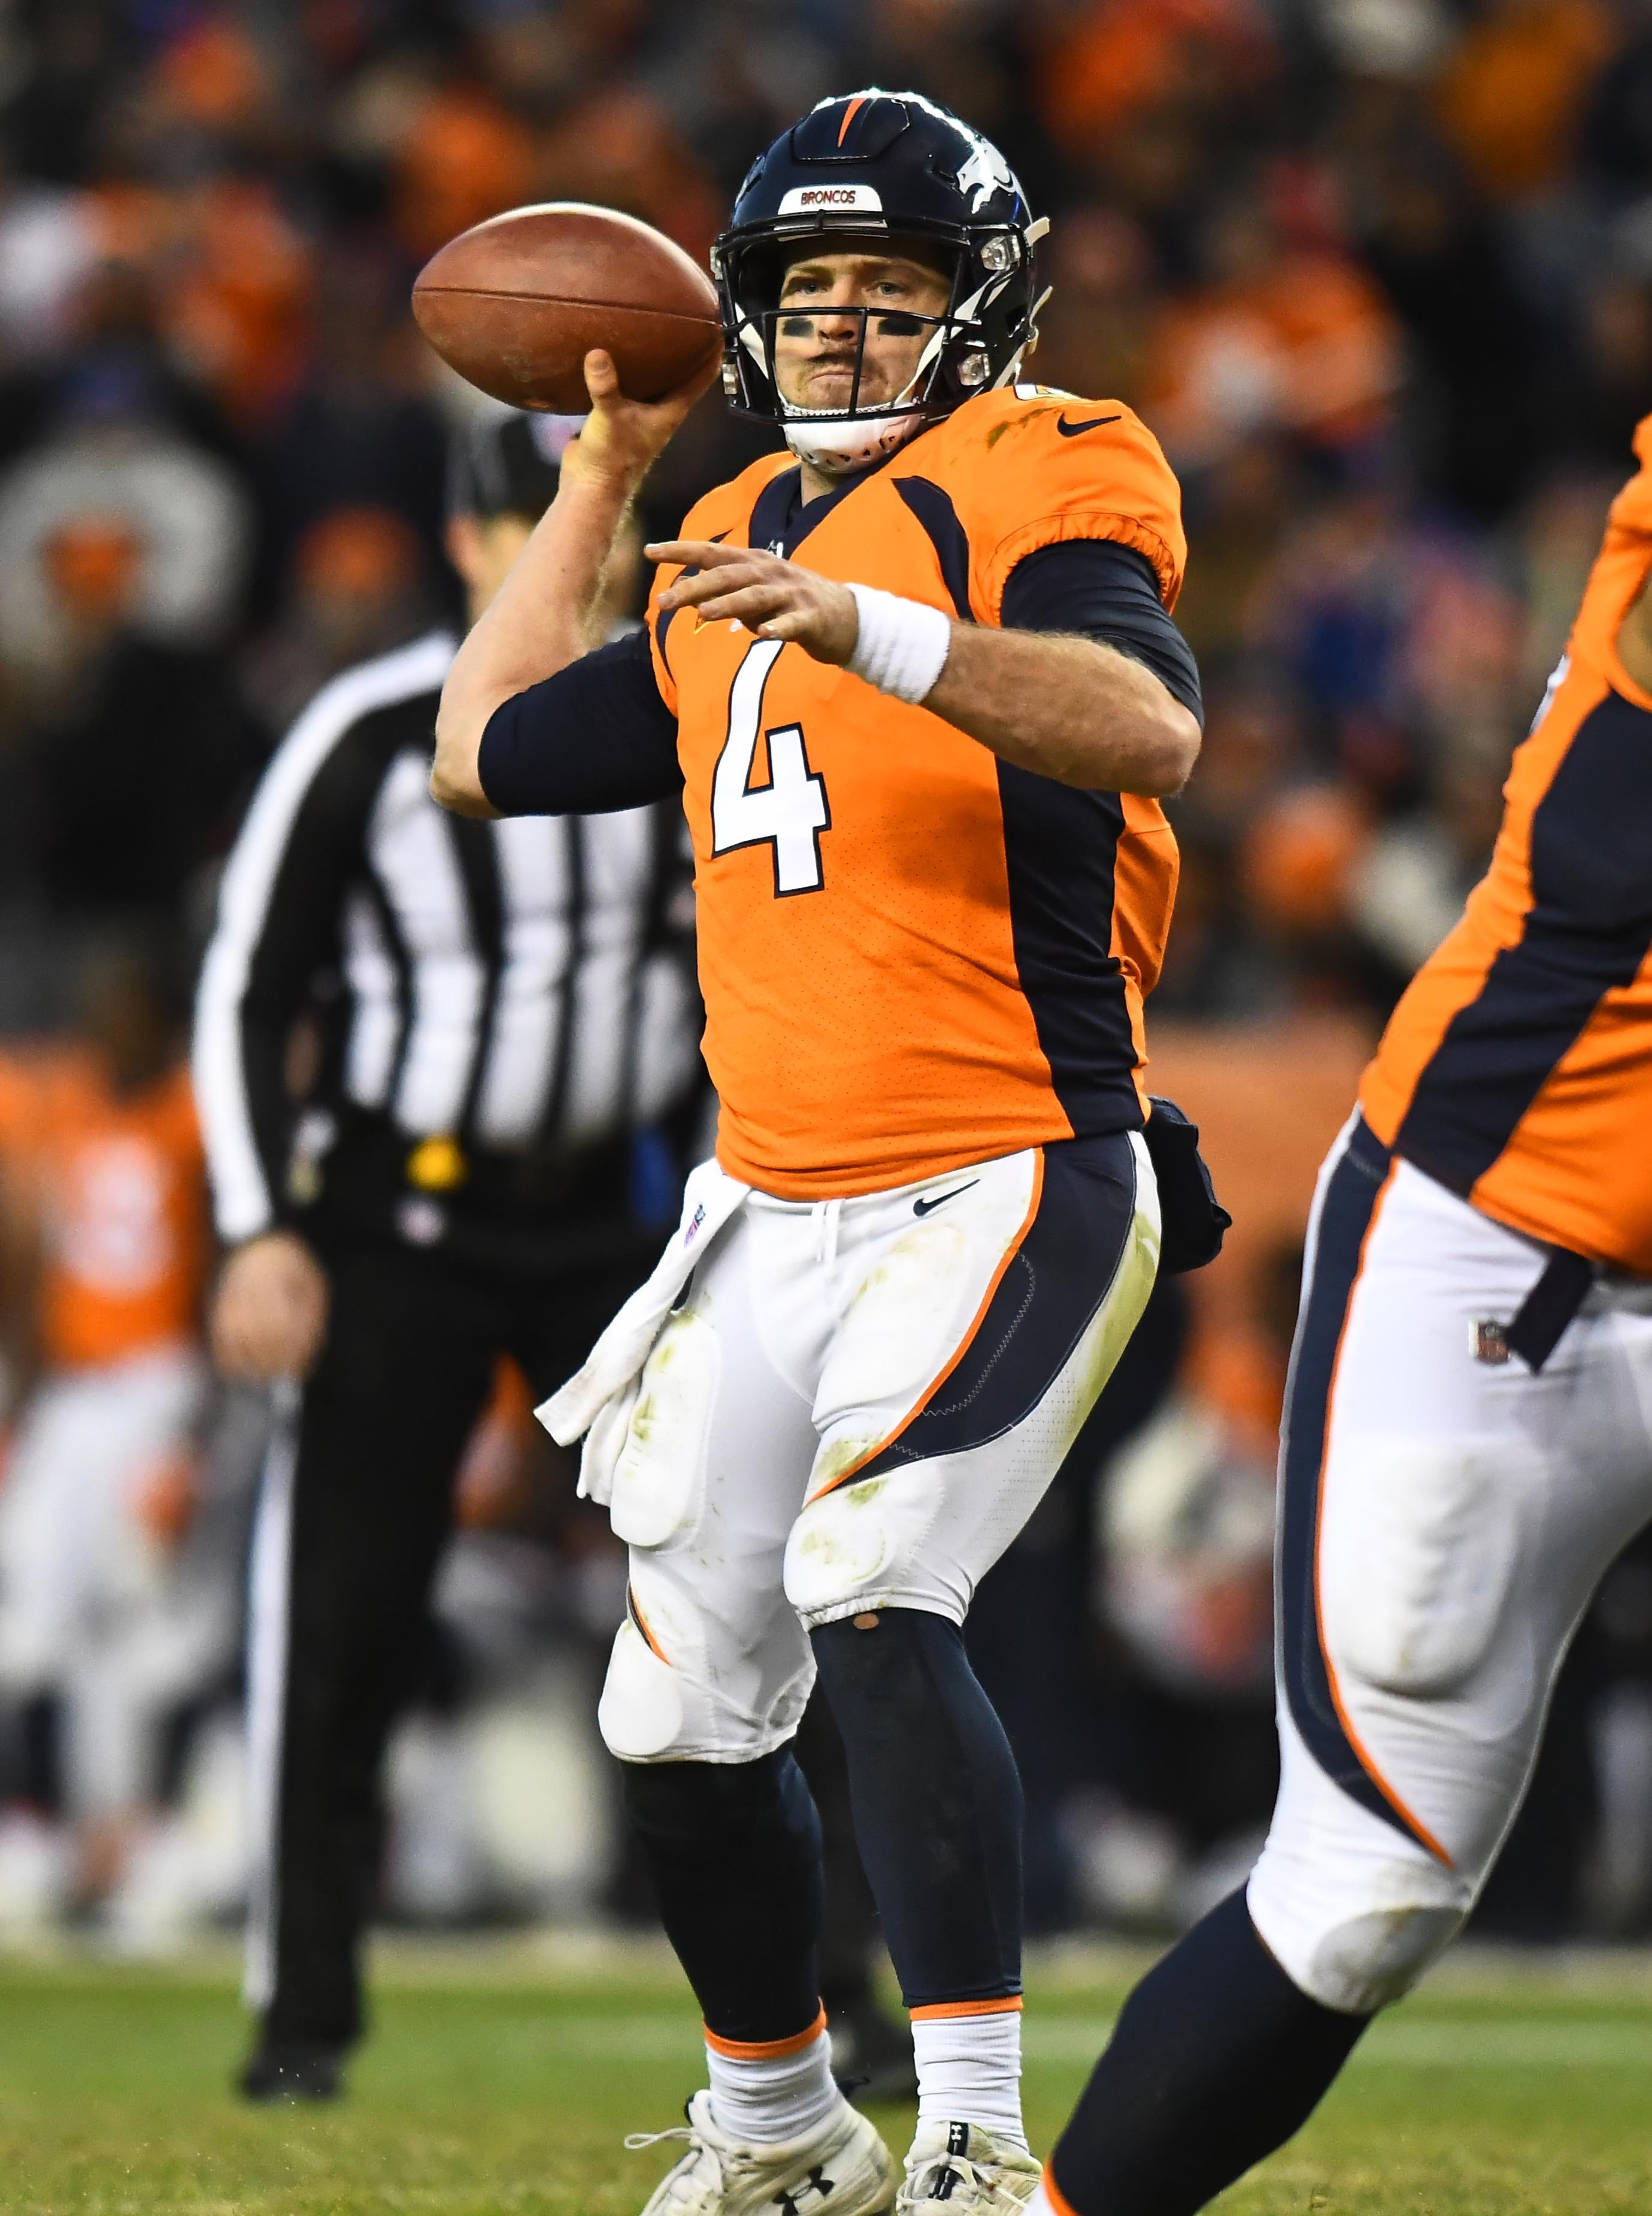 Redskins agree to acquire QB Case Keenum in trade with Broncos